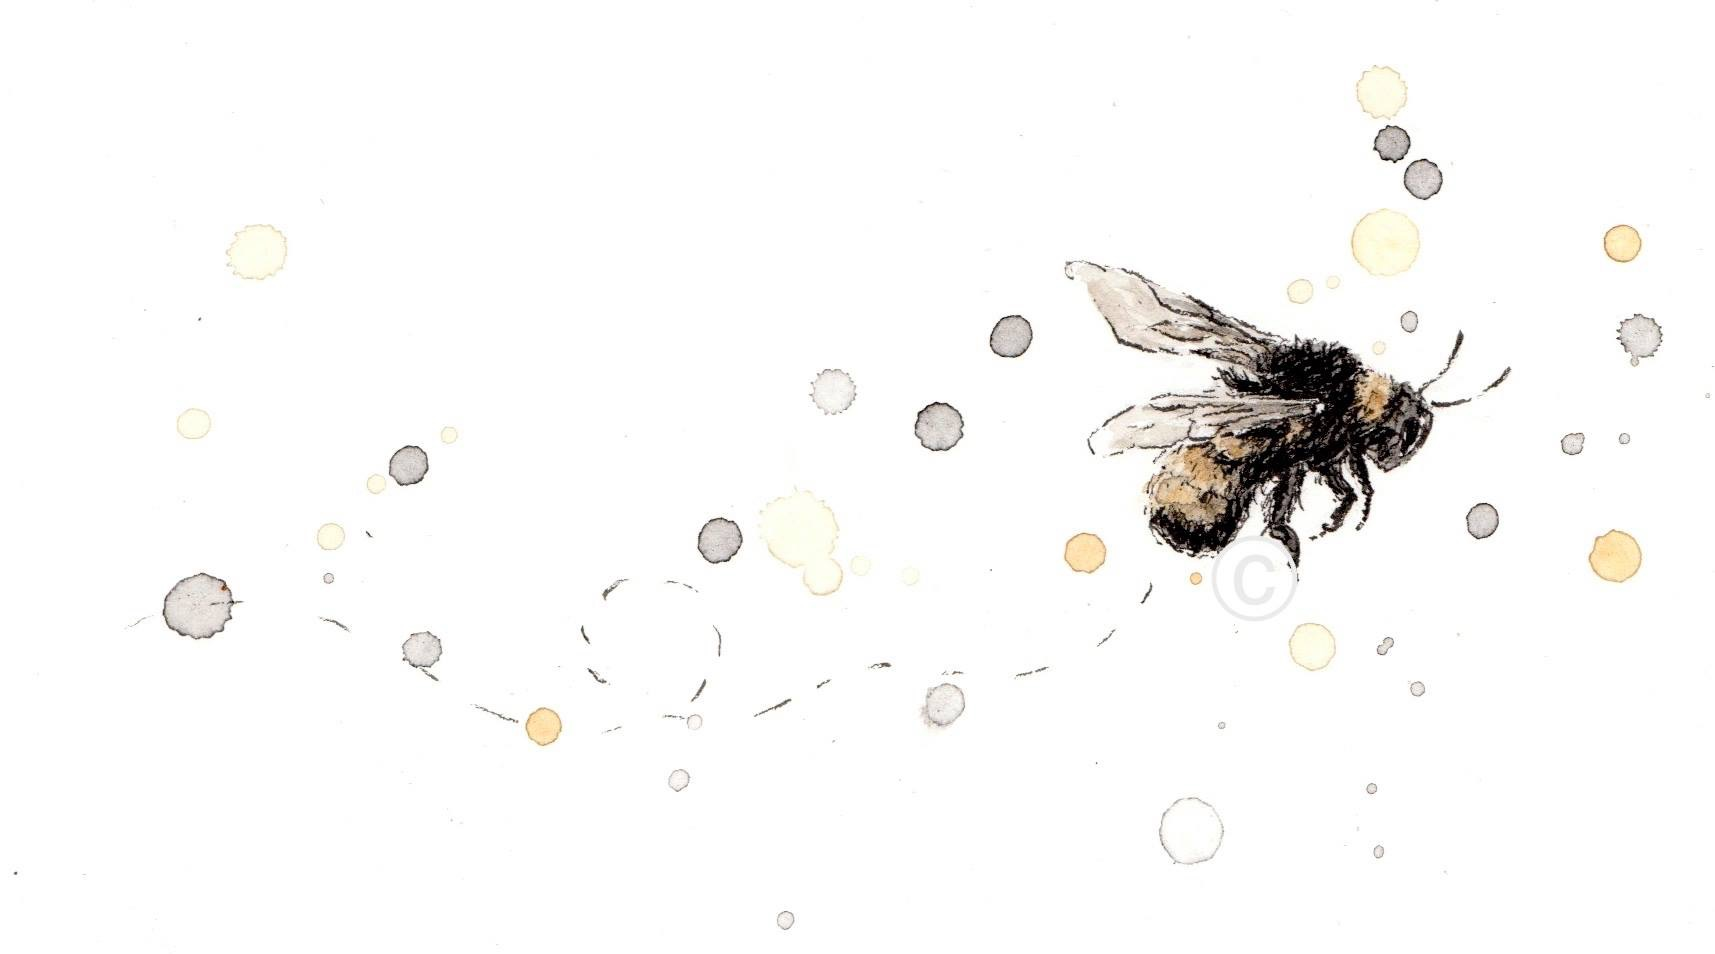 SINGLE FLYING BEE